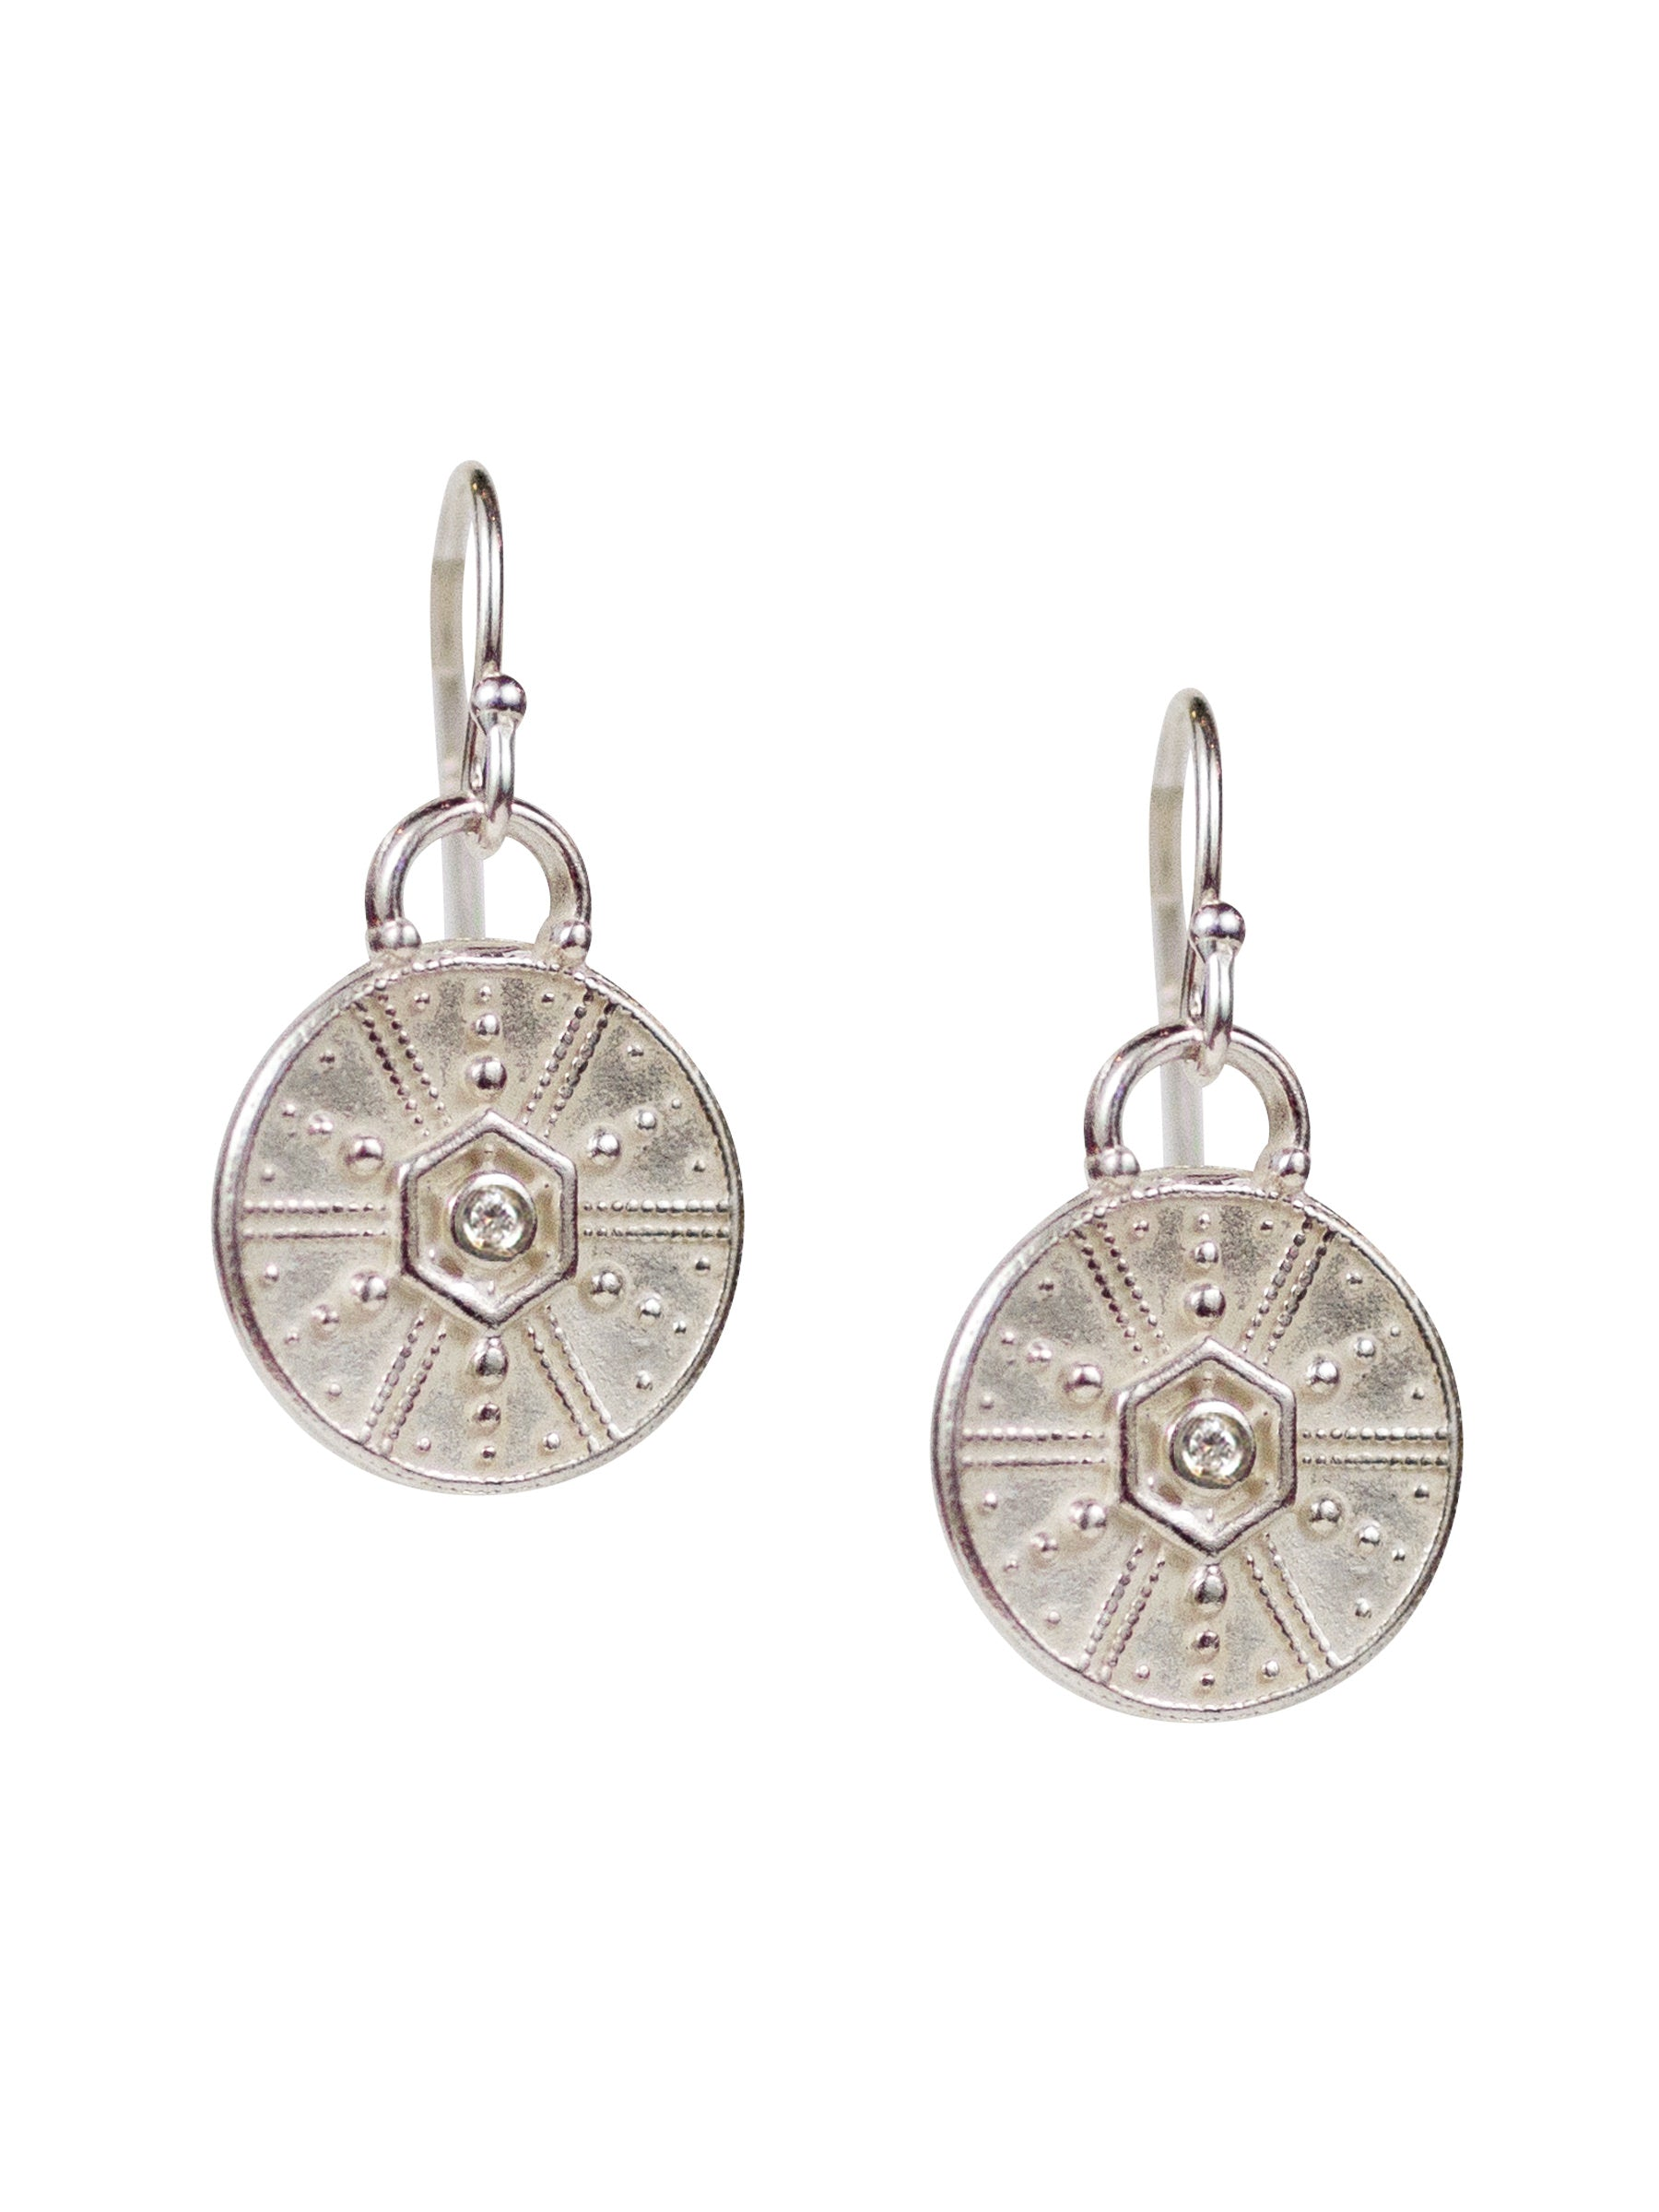 "Raja Earrings ""explore new possibilities"""